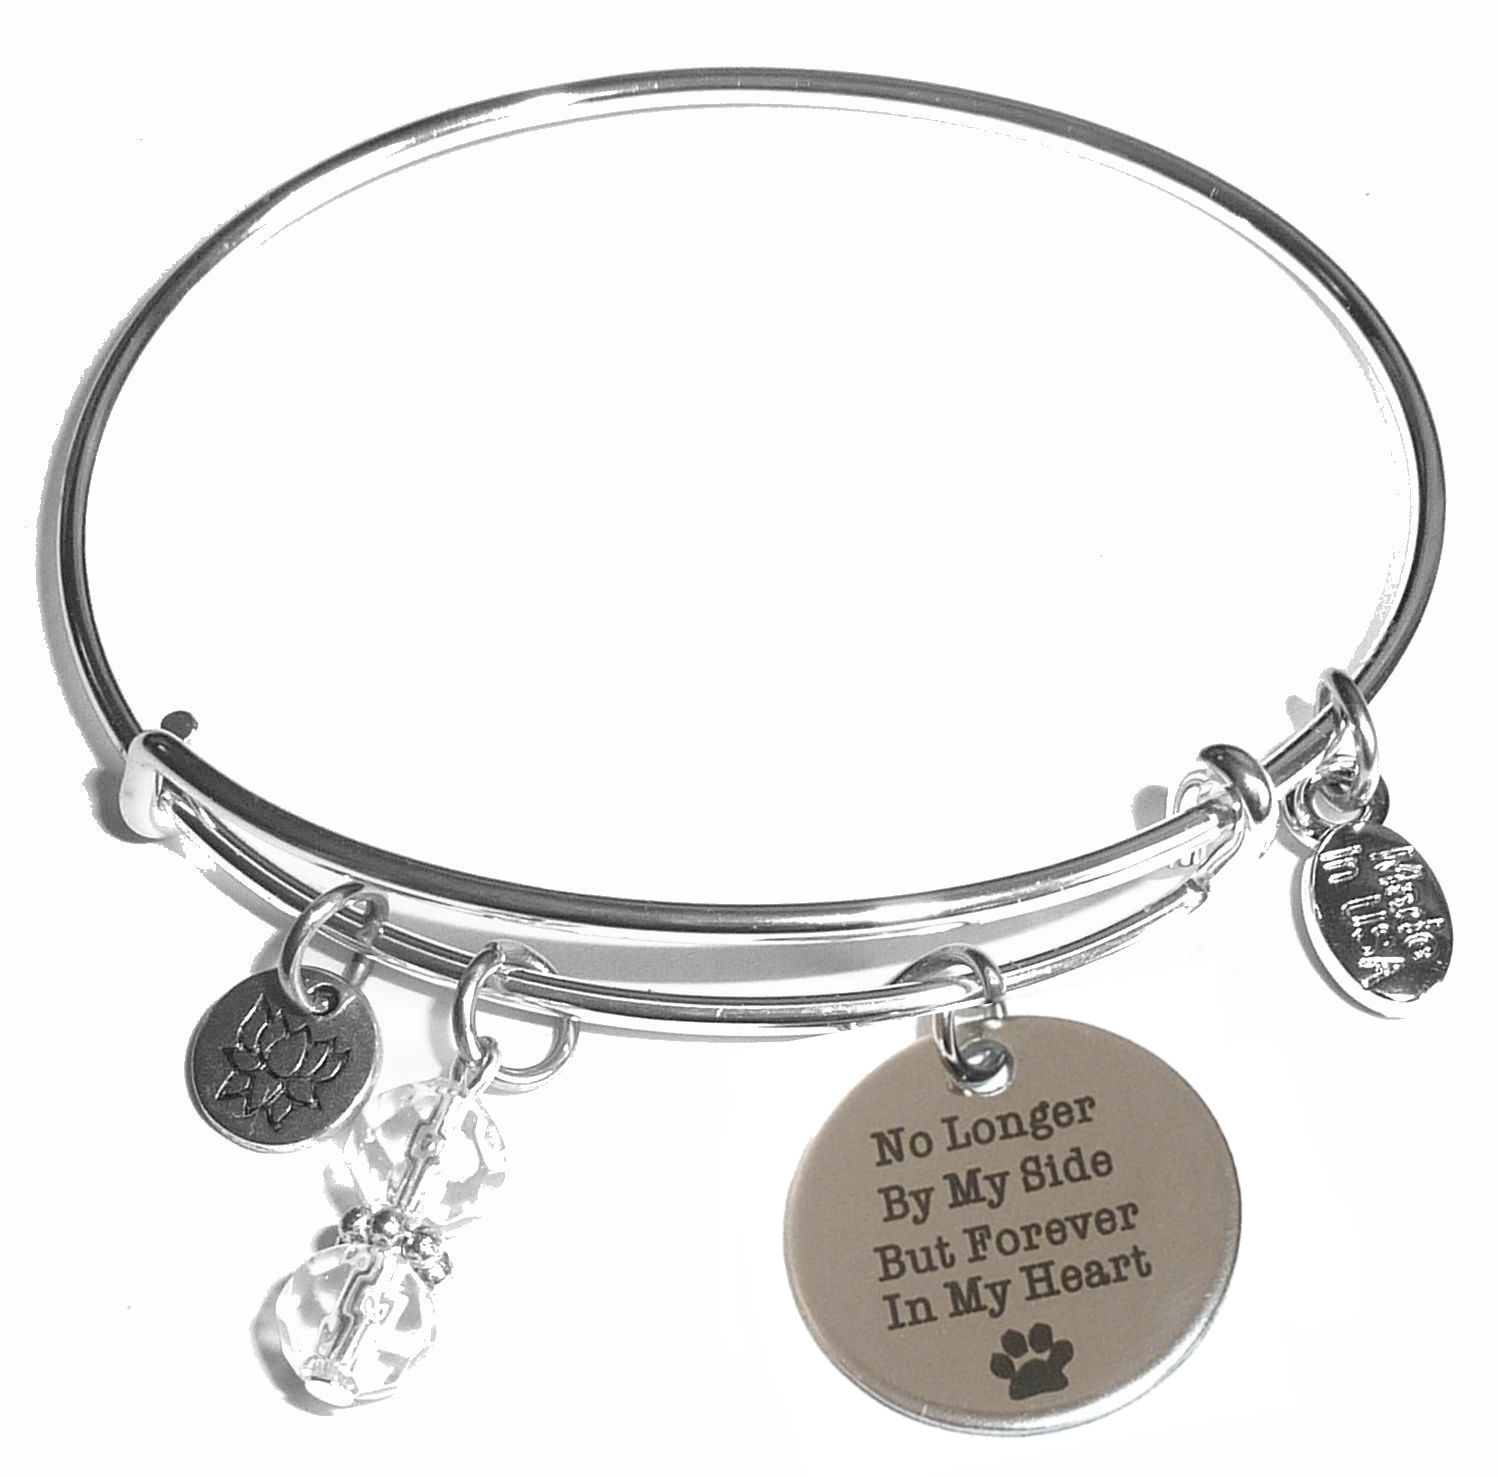 No Longer By My Side But Forever In Heart Message Bangle Bracelet Expandable Wire Comes A Gift Box